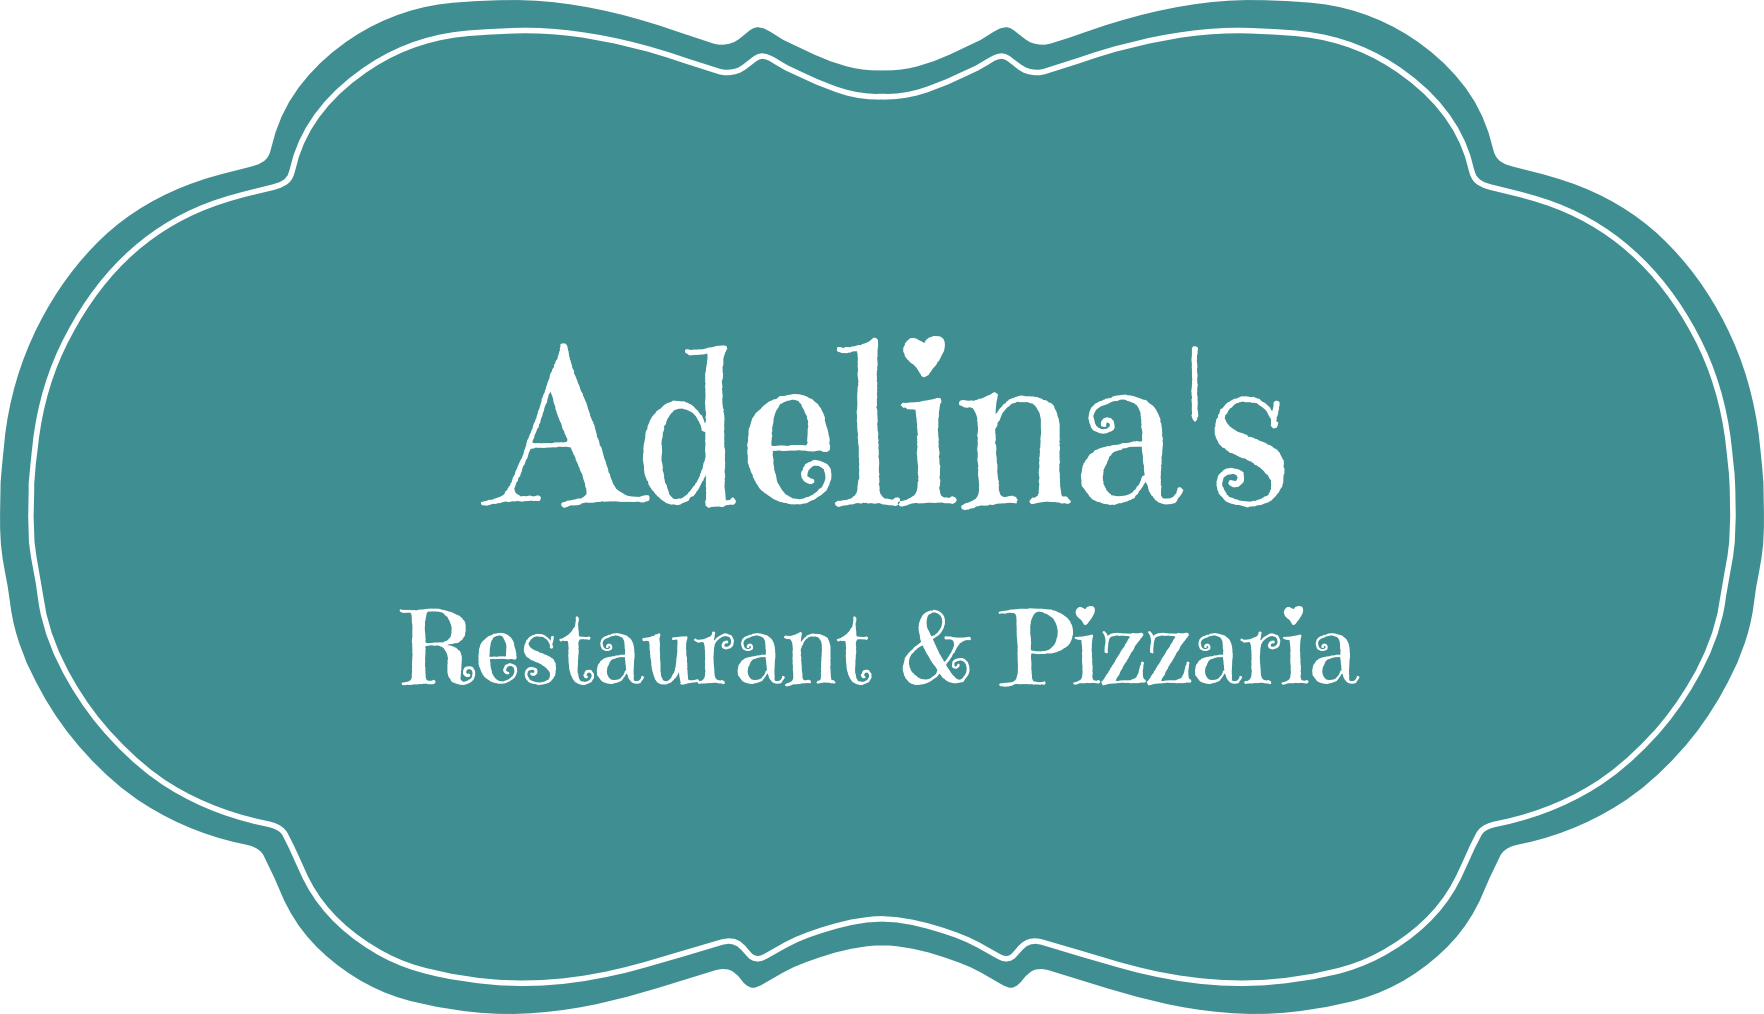 Adelina's restaurant and pizzaria logo